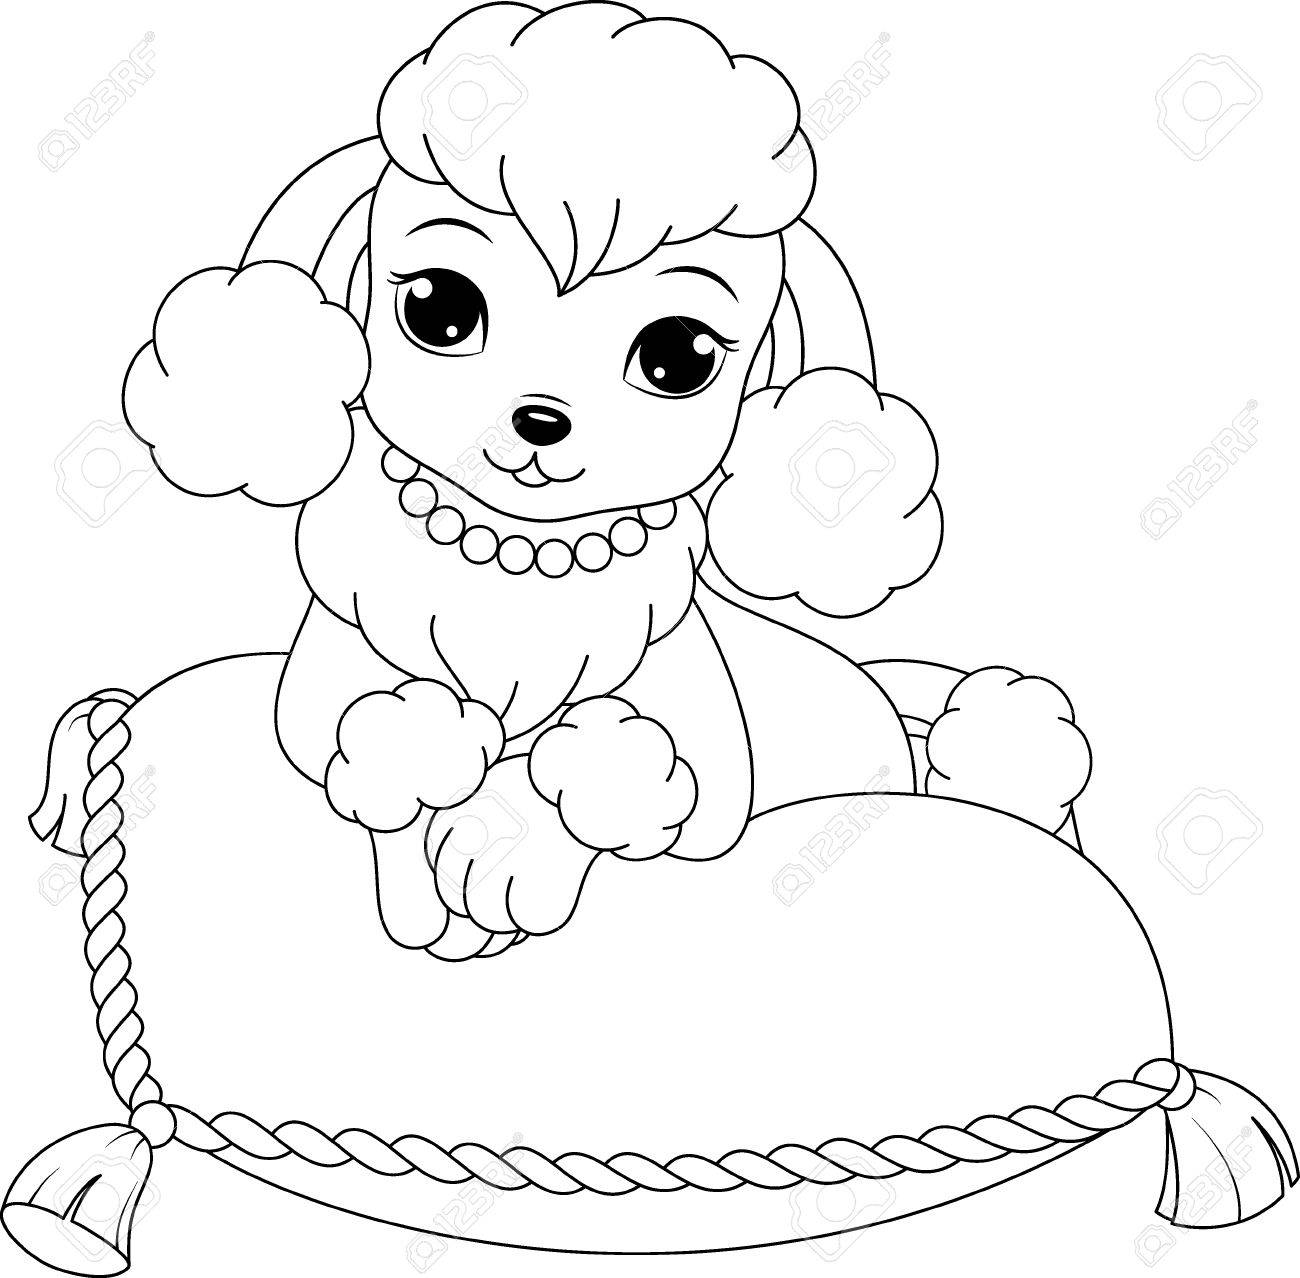 Lovely Poodle Coloring Page Stock Vector   61383223